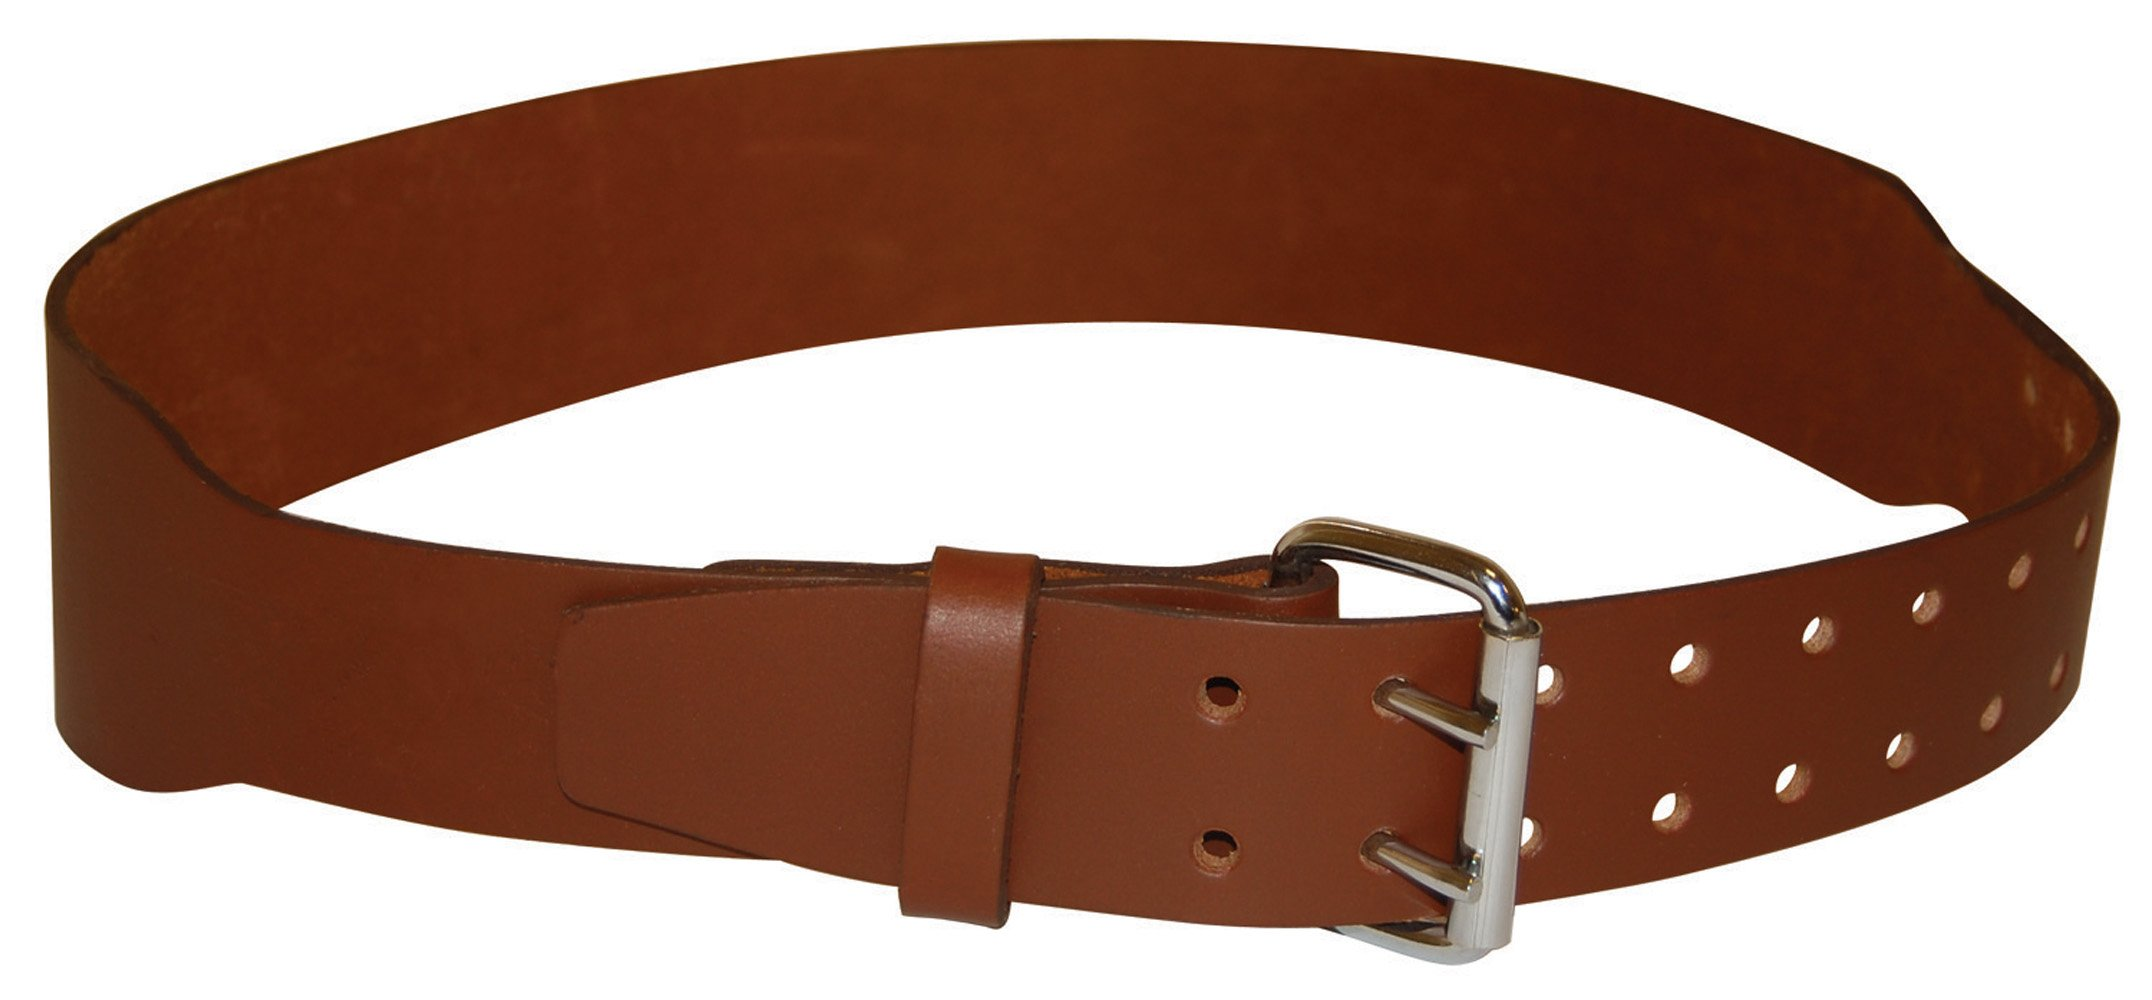 BucketBoss 88963 U.S. Leather Work Belt Fits 37-Inch to 46-Inch waist.